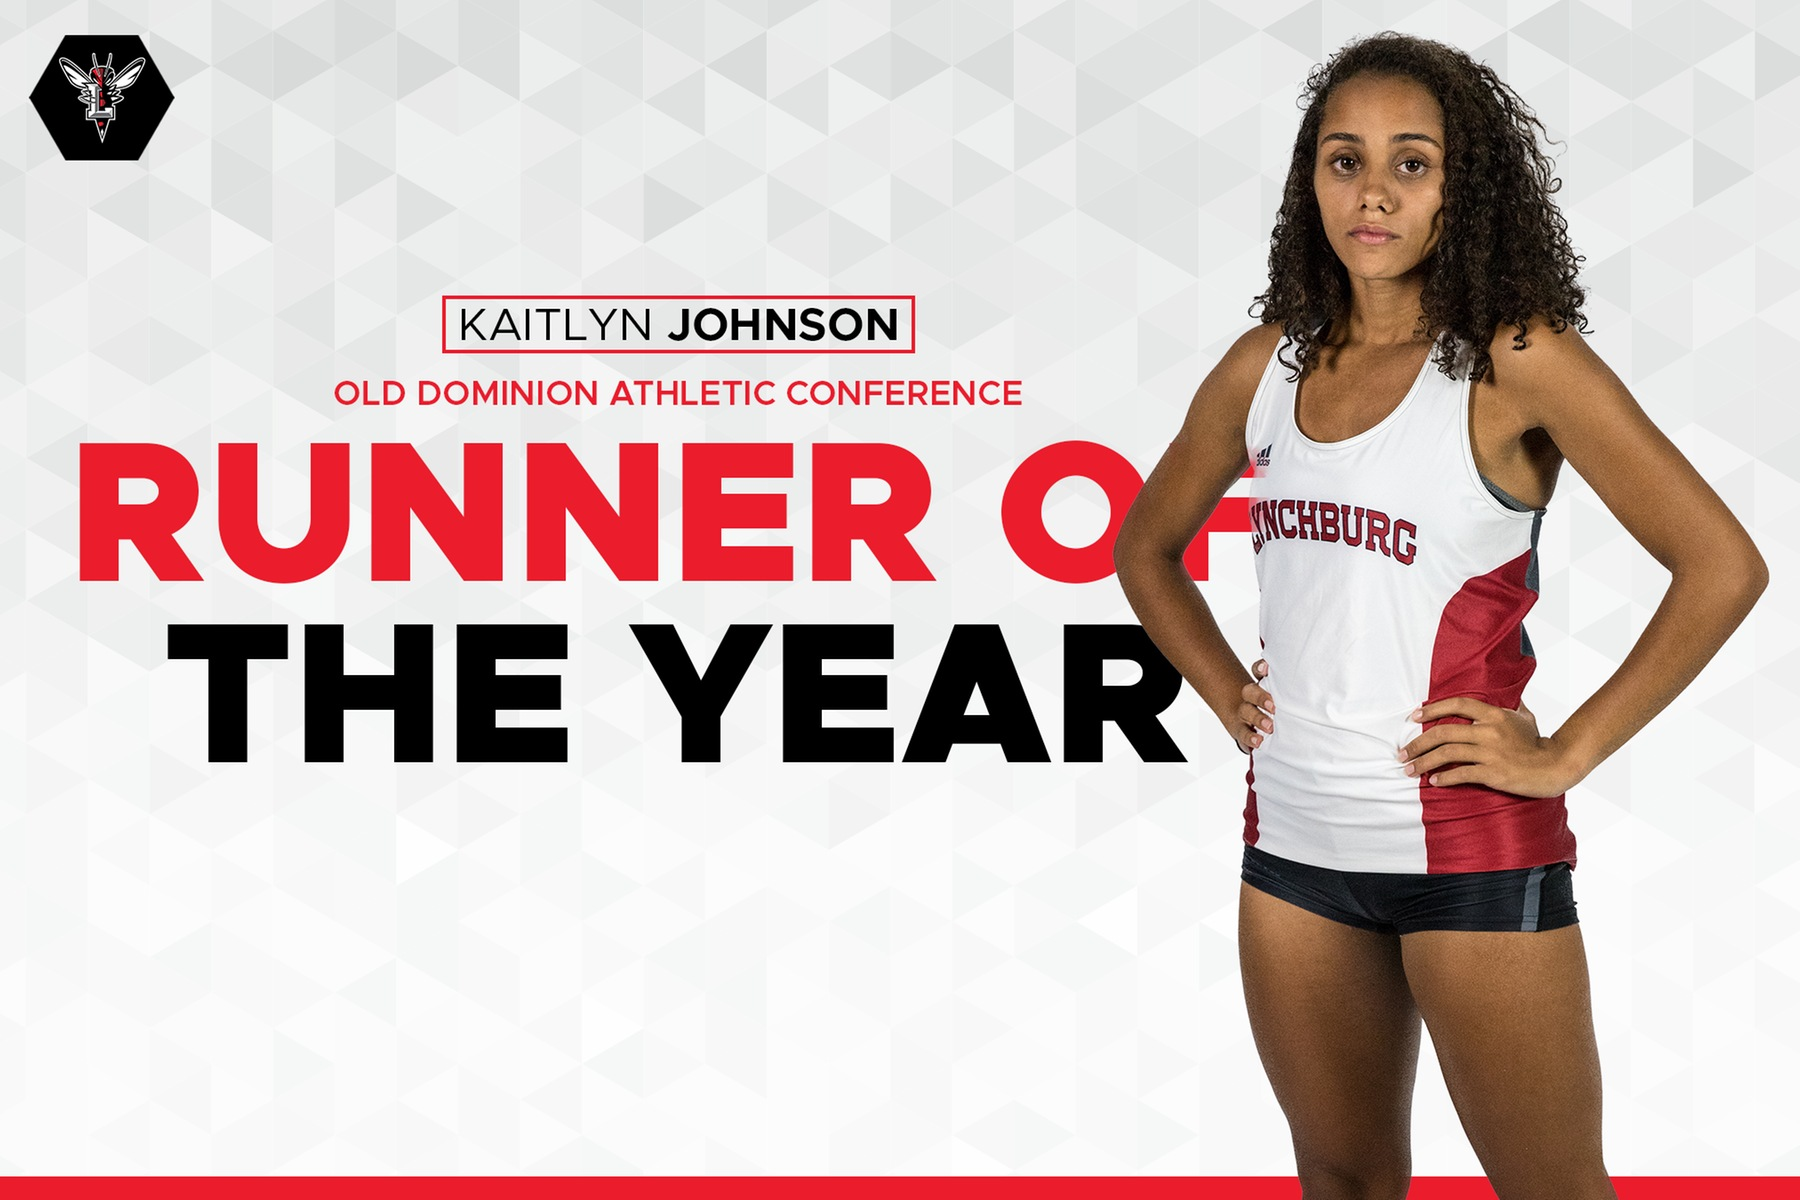 Graphic with cutout image of Kaitlyn Johnson in uniform on white background. Text: Kaitlyn Johnson ODAC runner of the year